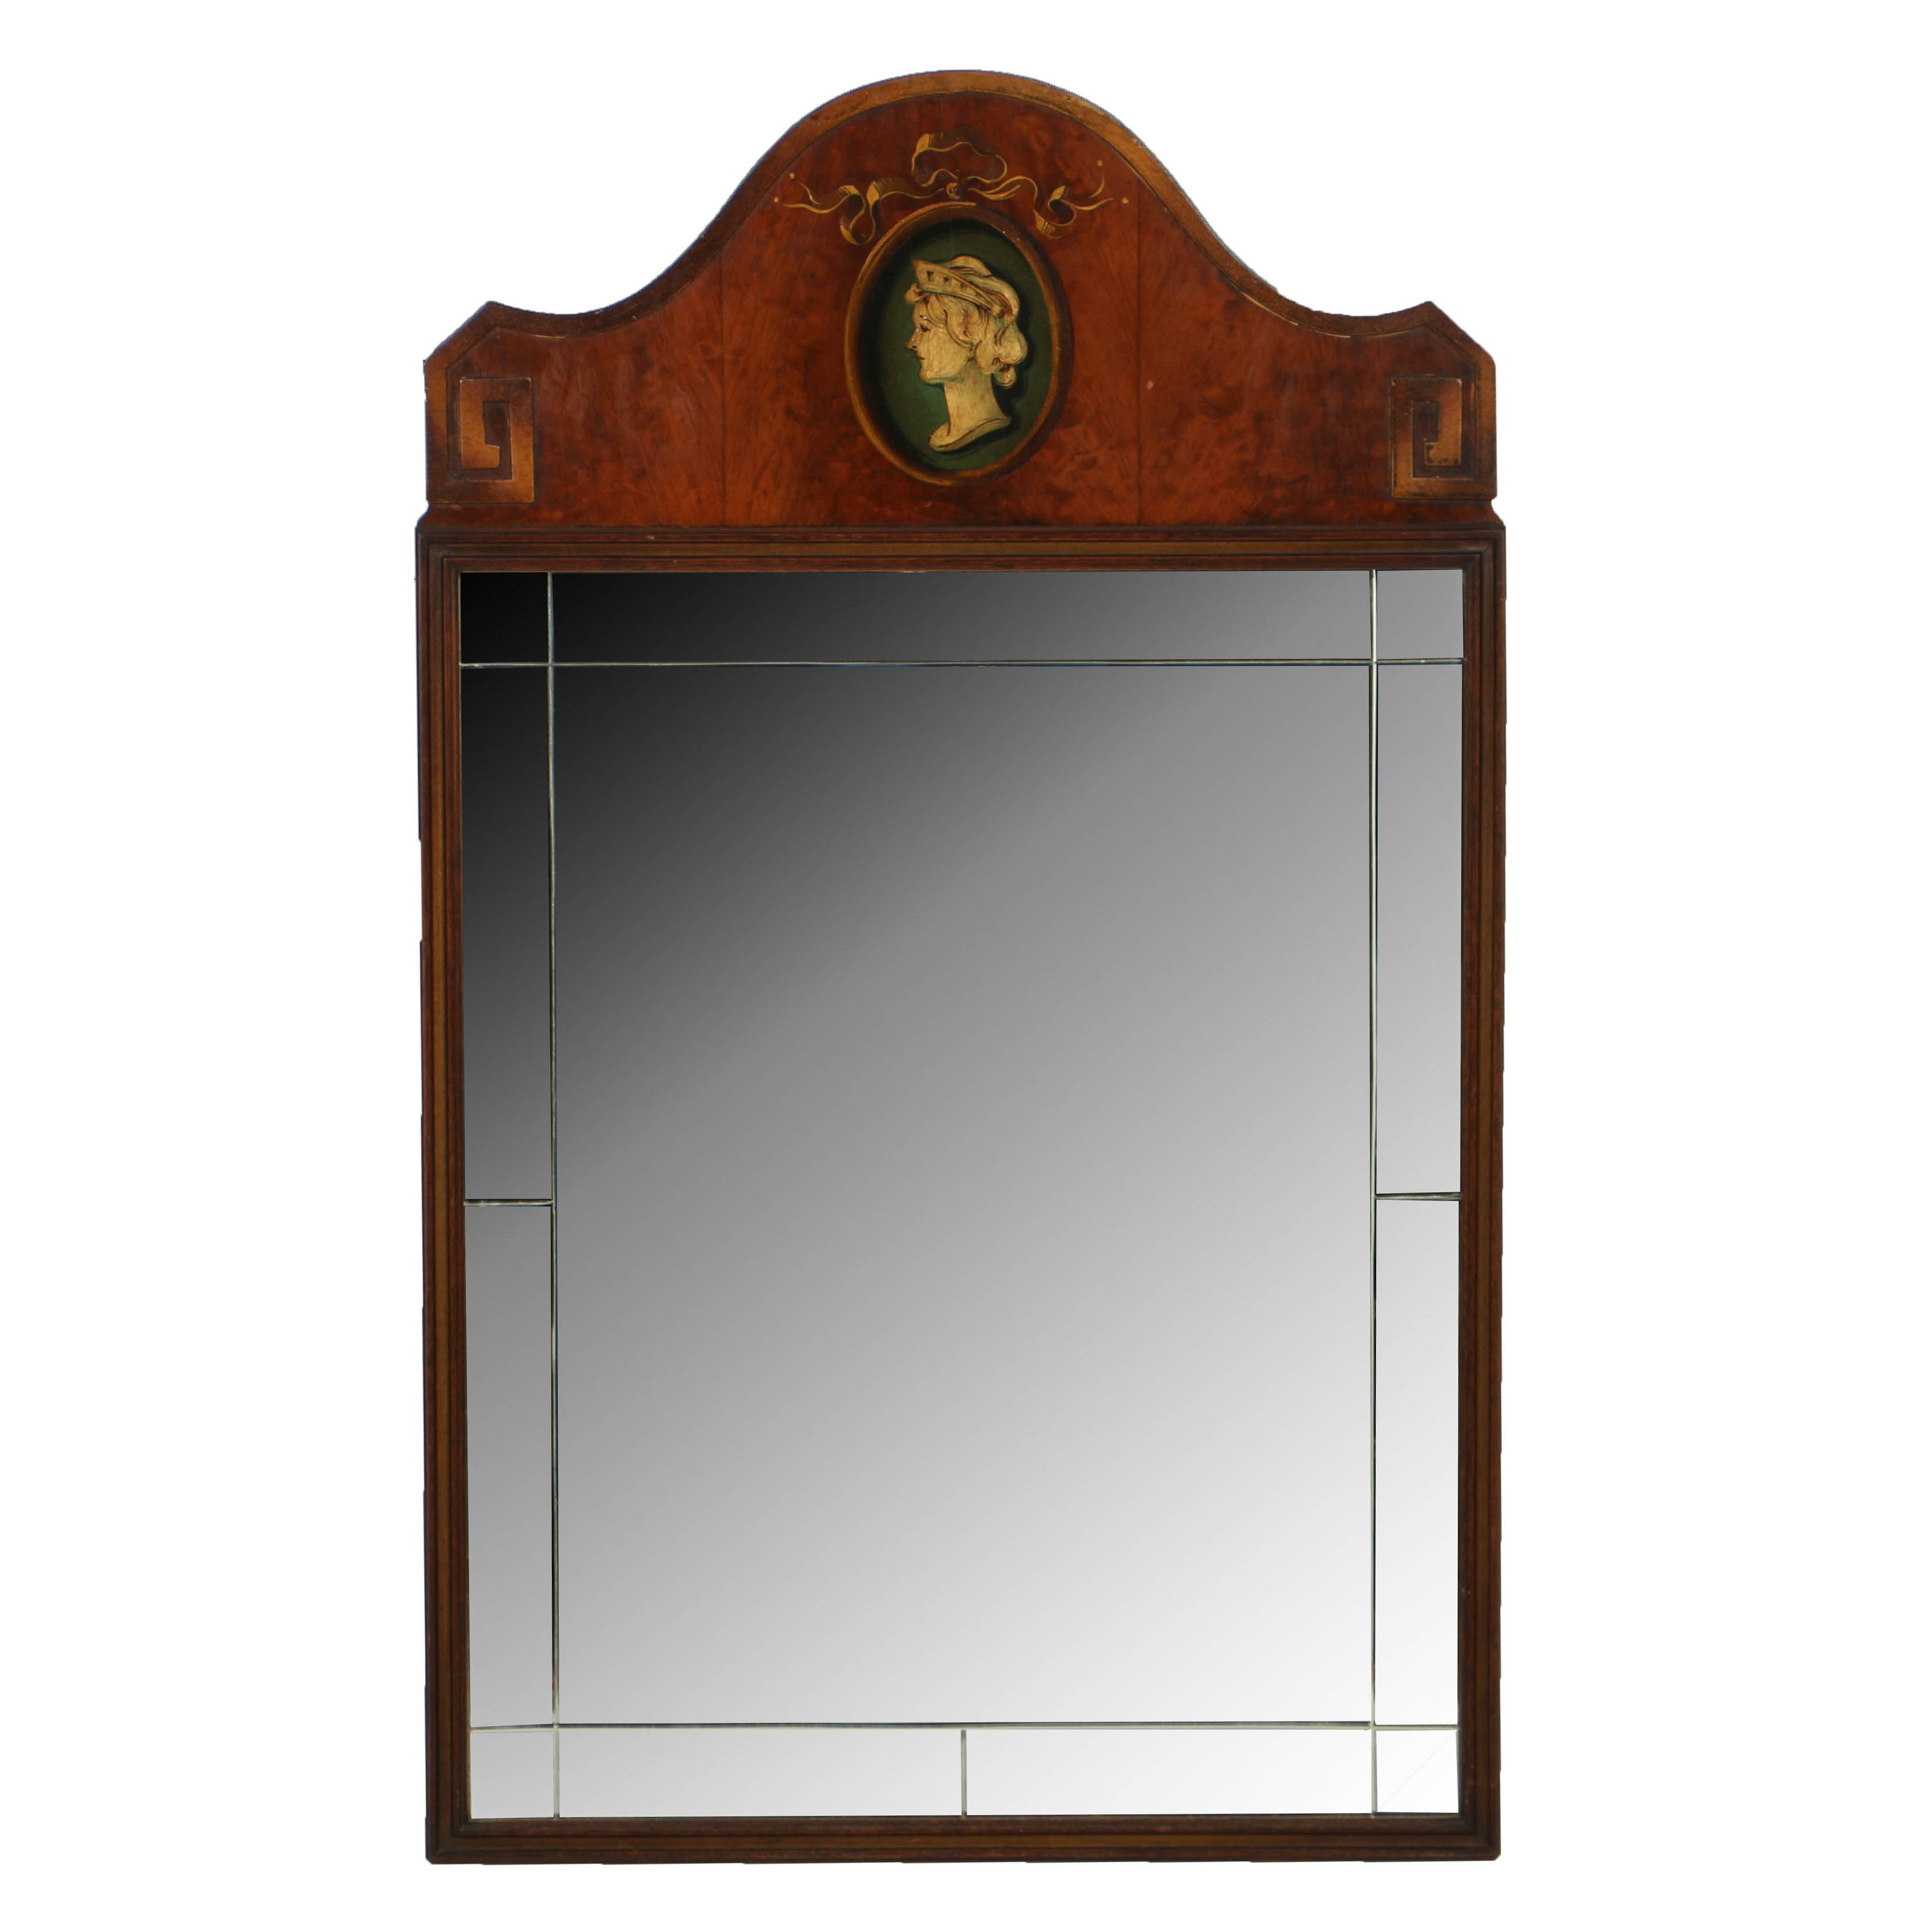 Vintage Neoclassical Style Wall Mirror by Bethlehem Furniture Company